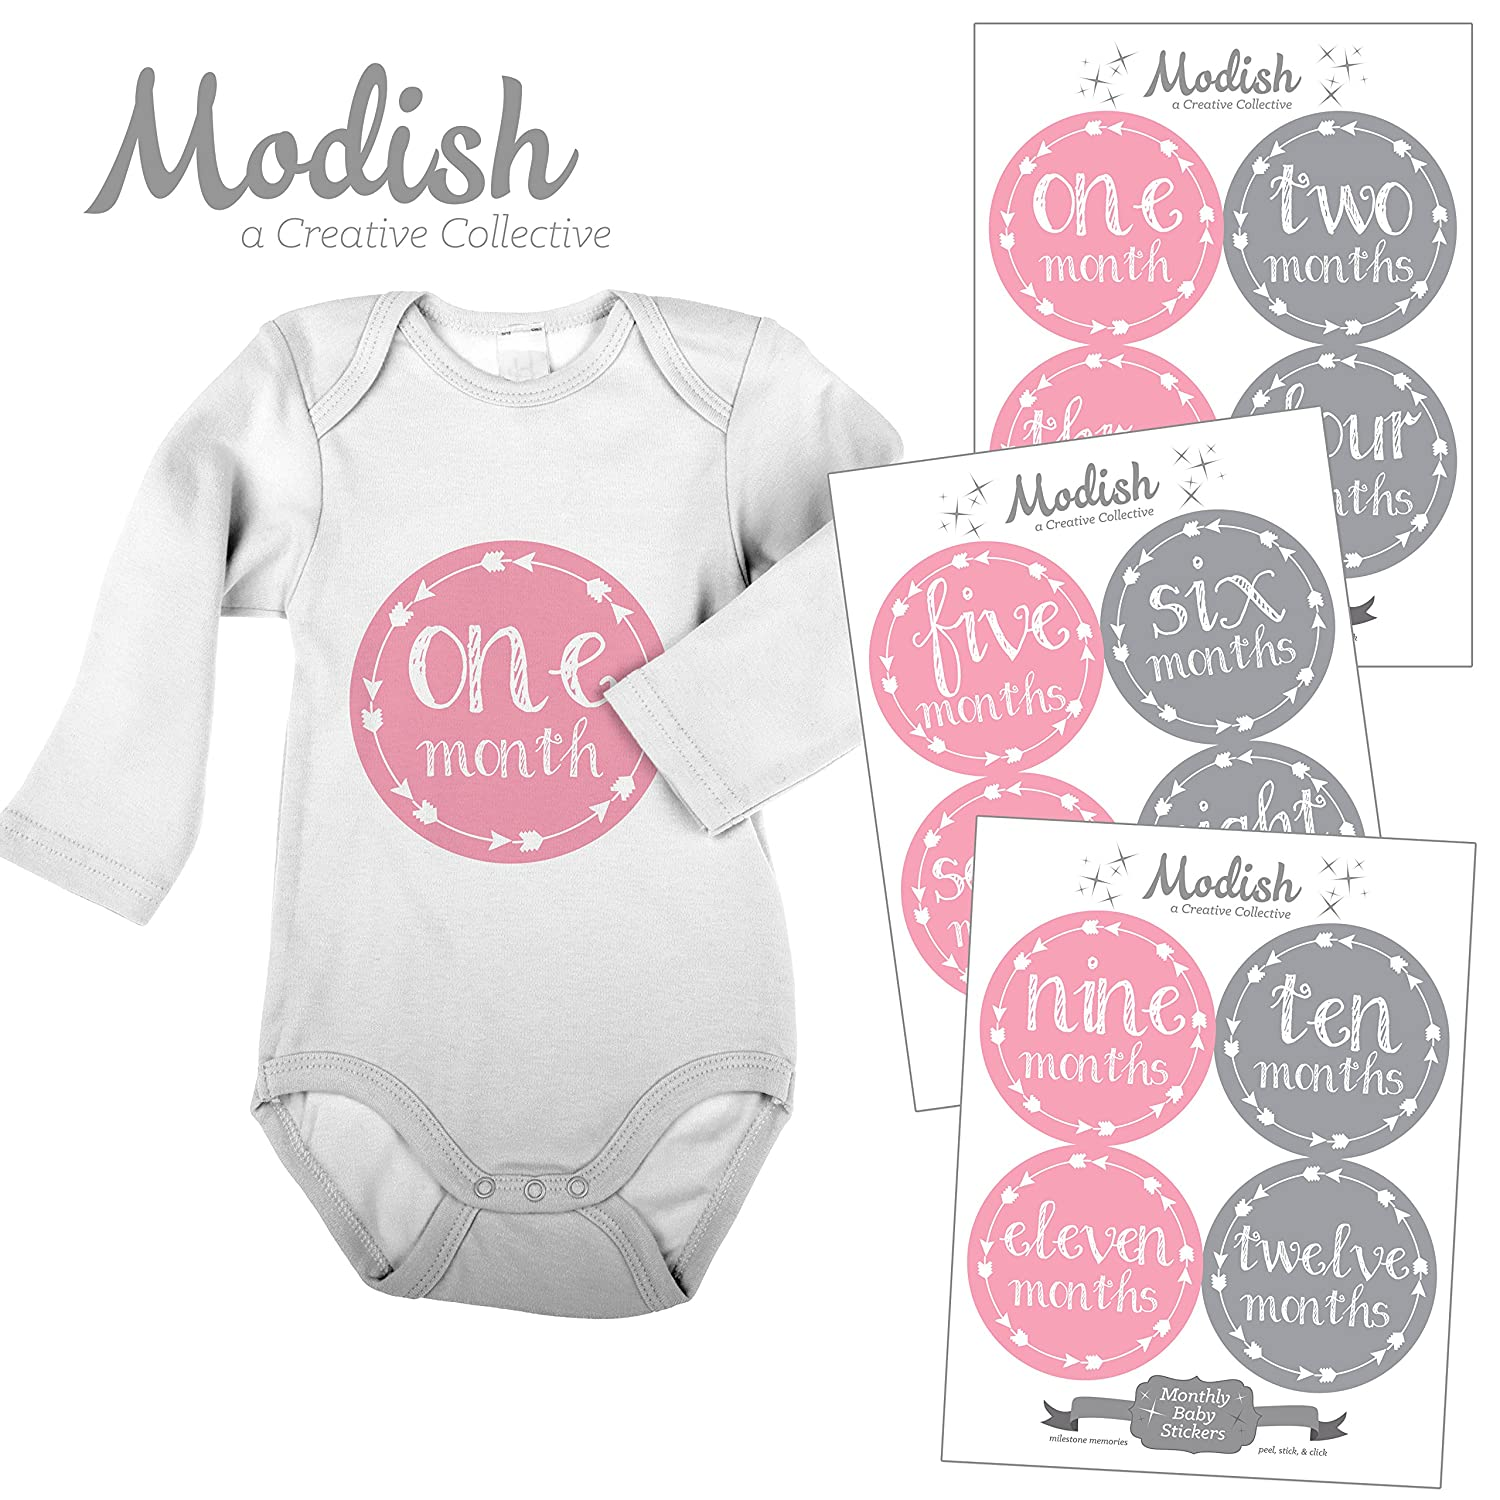 配送員設置 12 Monthly by Modish Baby Baby Stickers, Pink & Gray, Girl, Baby Belly Stickers, Monthly Onesie Stickers, First Year Stickers Months 1-12, Pink, Grey, Arrows, Tribal, Baby Girl by Modish - Creative Collective B00XFQN49K, スポーツマーケットフクシスポーツ:fb1b54c7 --- mvd.ee